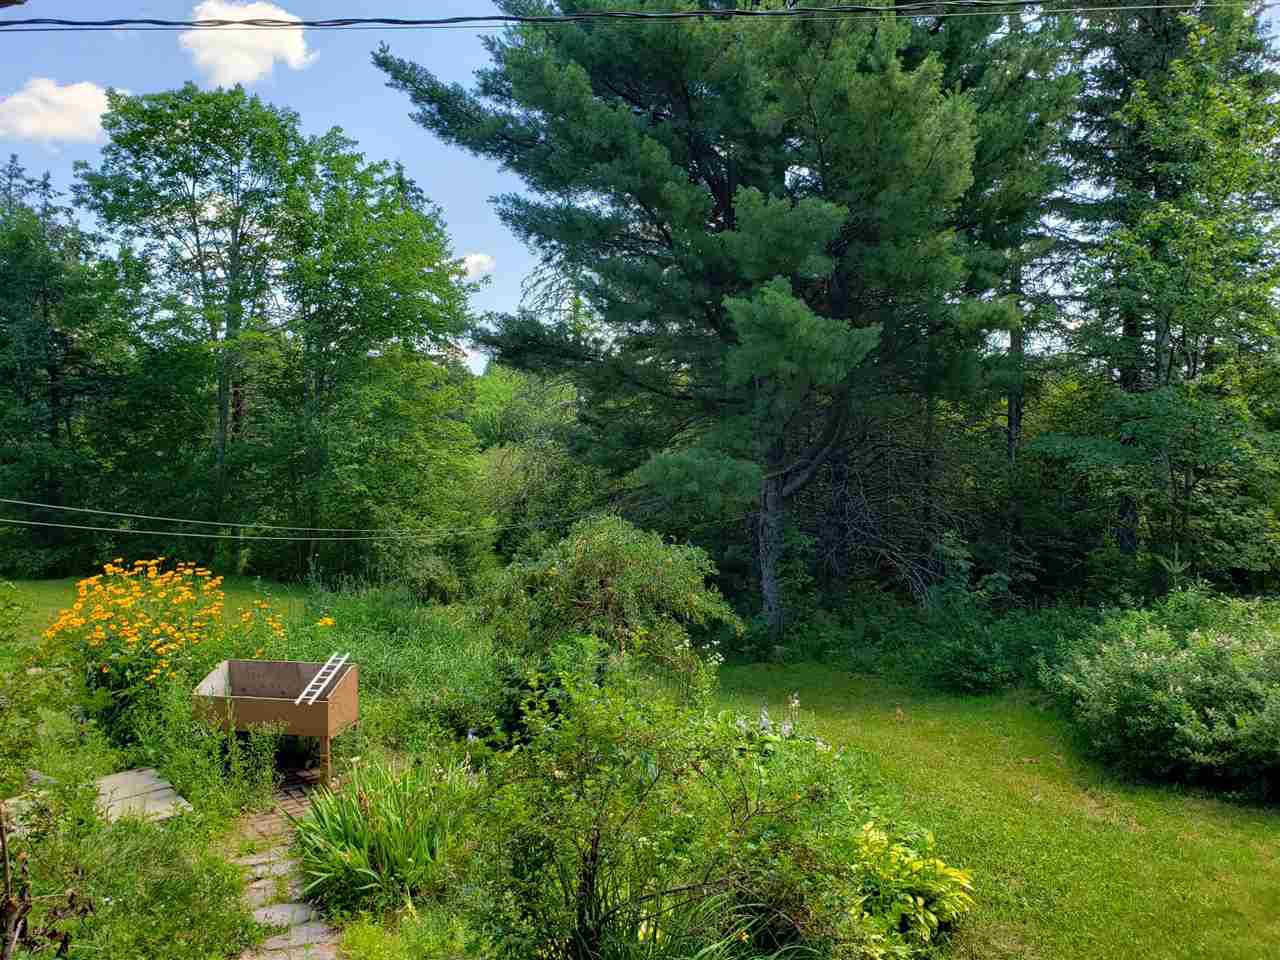 Photo 6: Photos: 2968 Aylesford Road in Lake Paul: 404-Kings County Residential for sale (Annapolis Valley)  : MLS®# 201915287